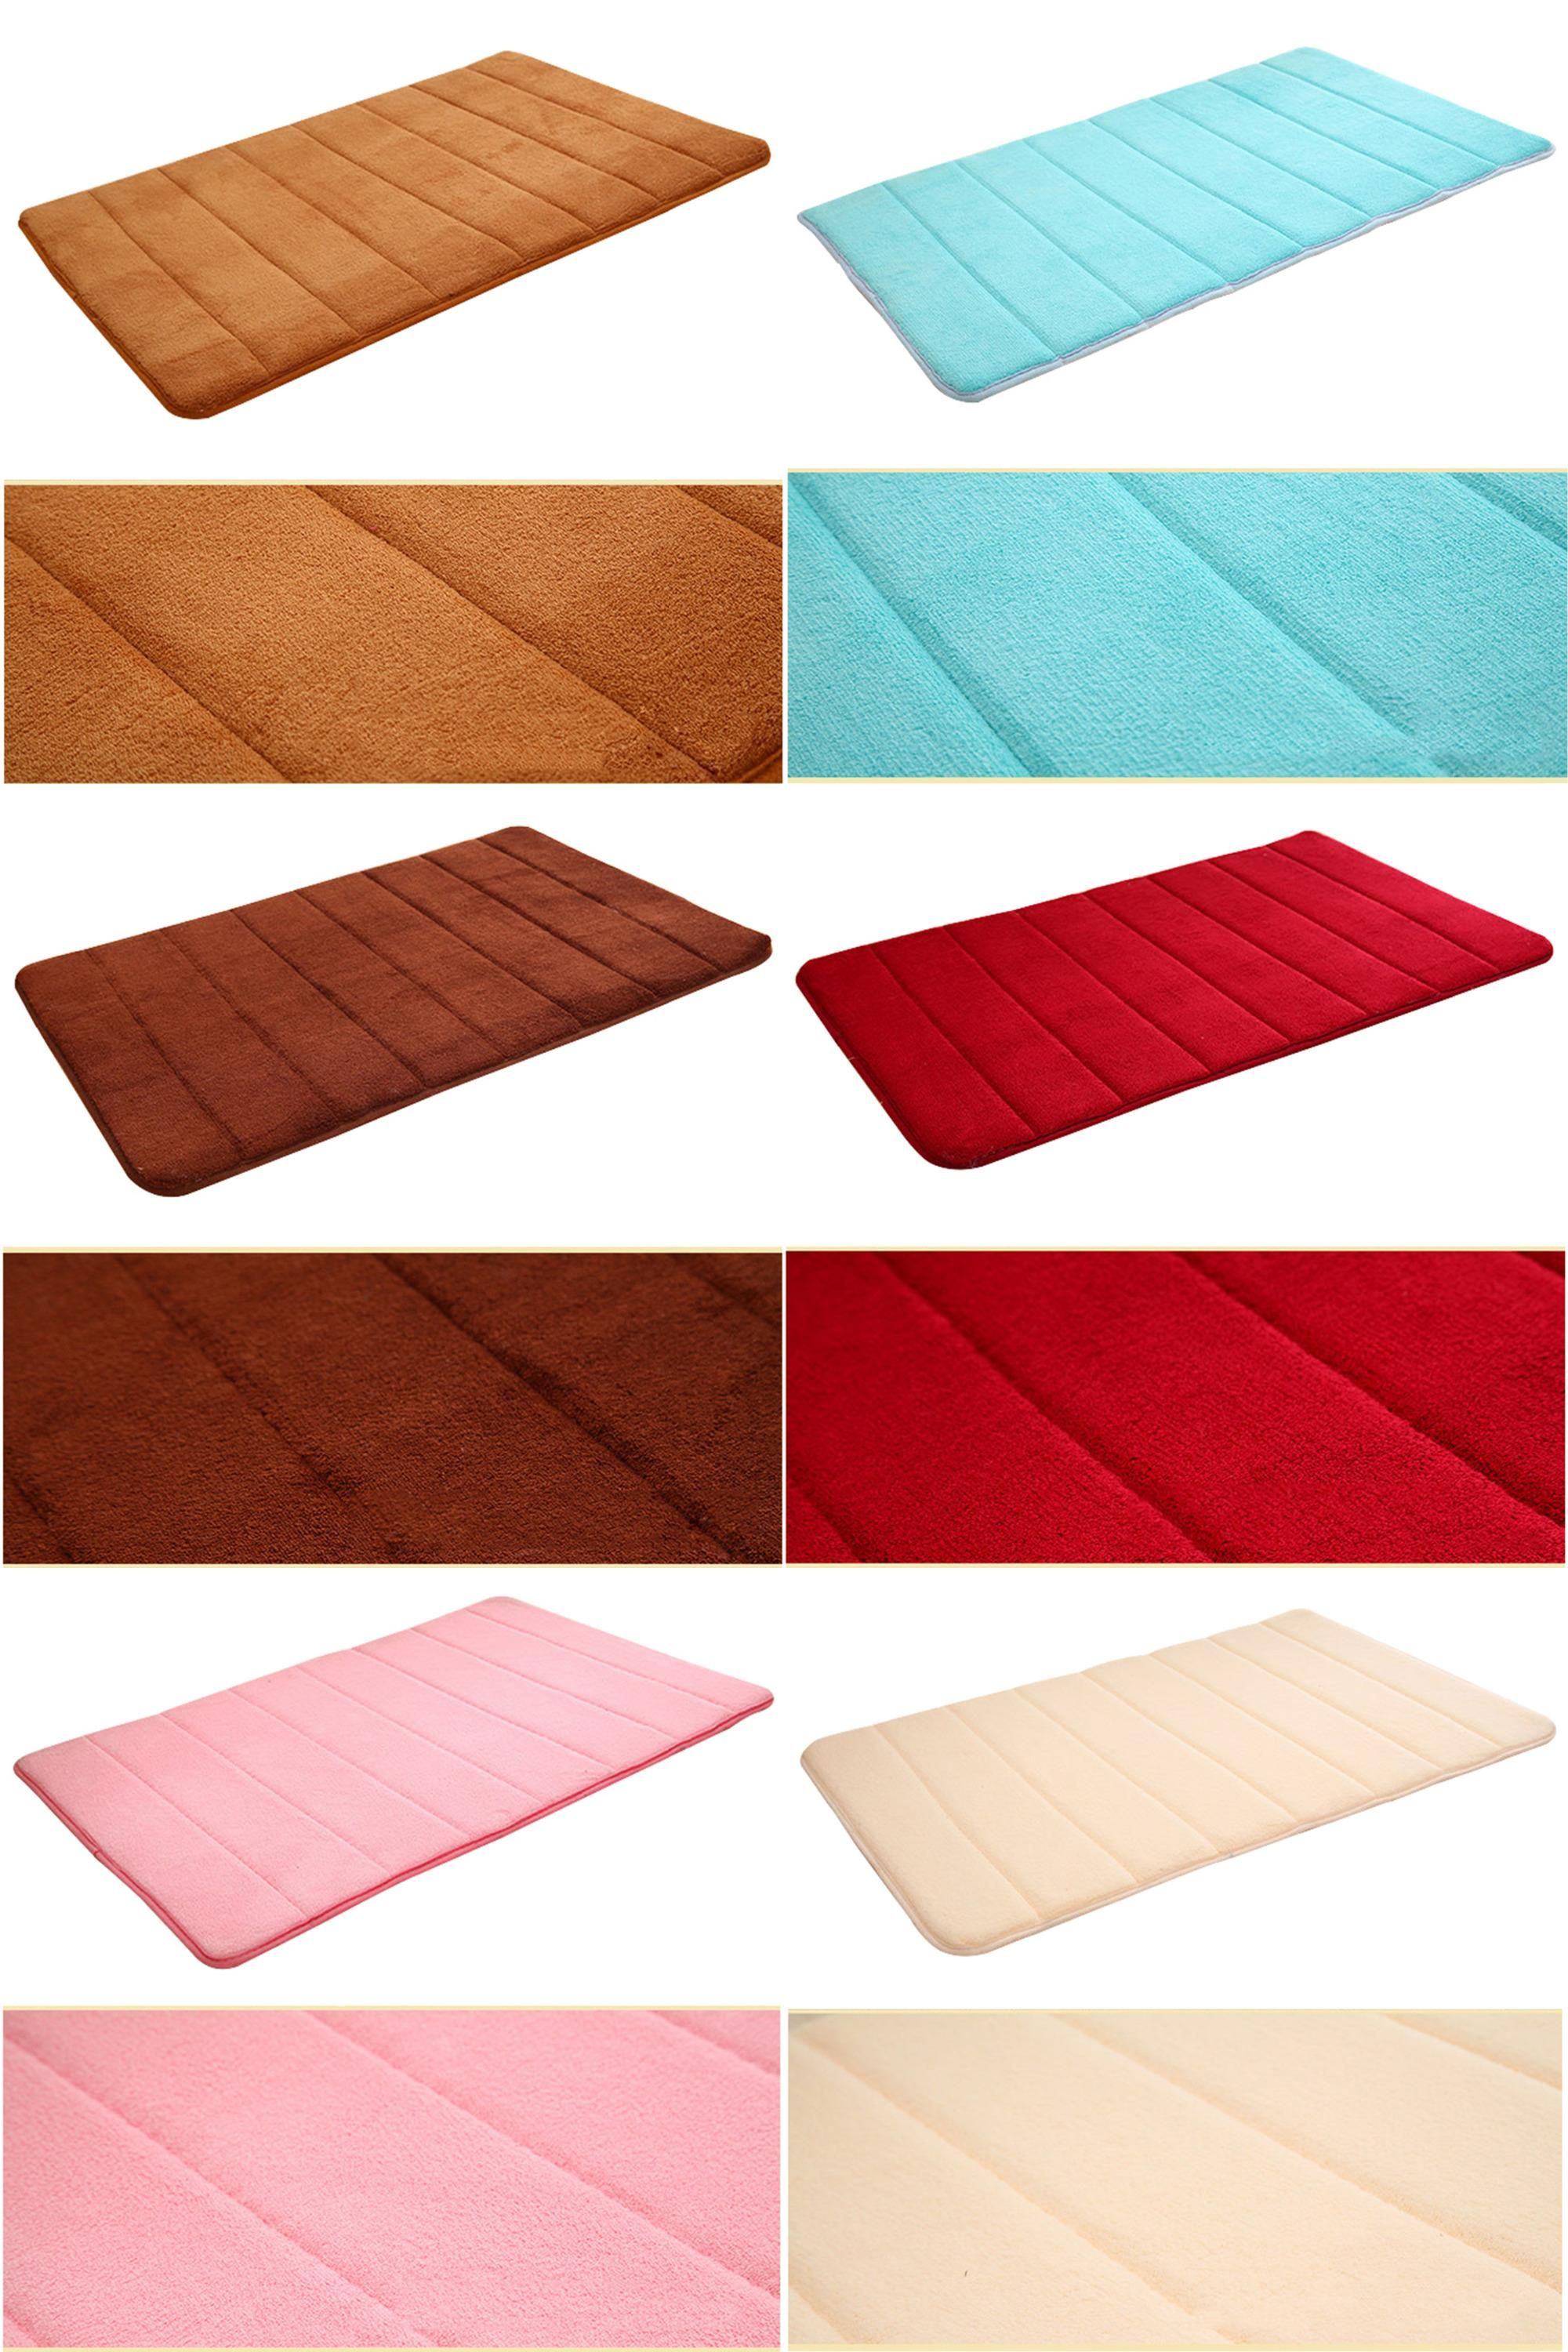 wholesale discount products original trim paper legal mats mat floor prices on letr tops perforated pads